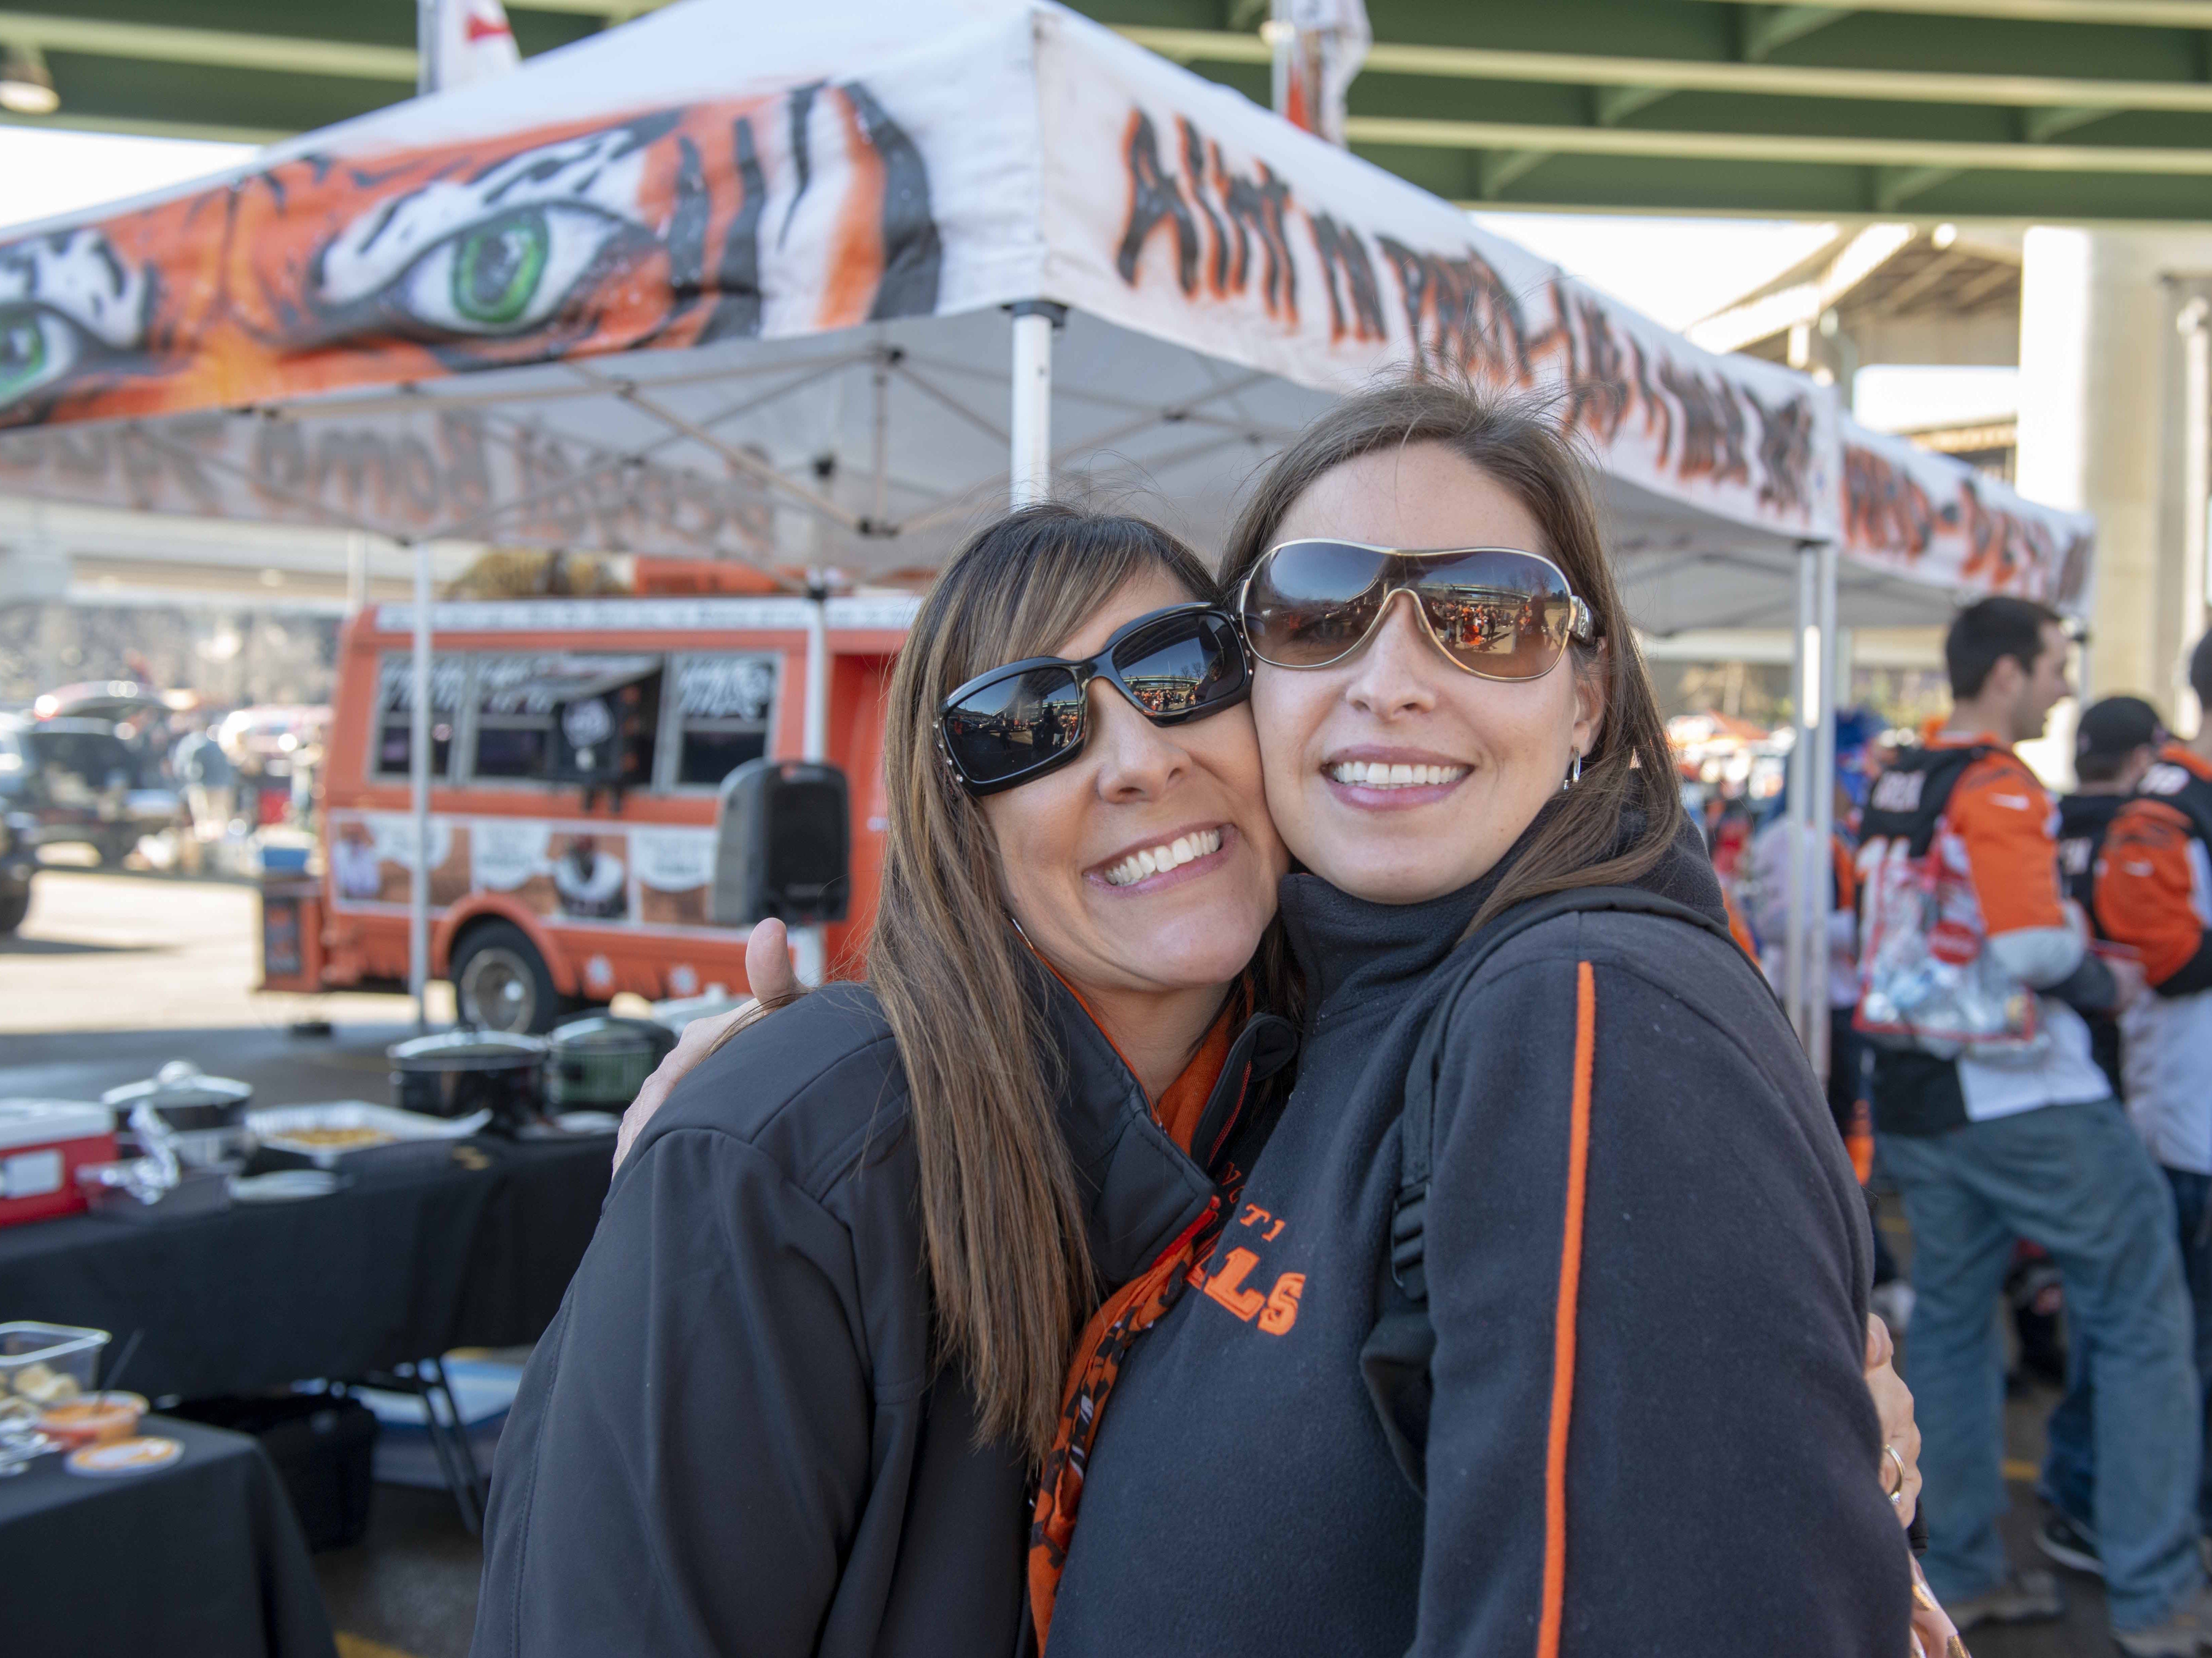 Cincinnati Bengals fans showed up for tailgating parties as the Cincinnati Bengals hosted the Denver Broncos at Paul Brown Stadium Sunday, December 2, 2018. Heather Hunt and Veronica Ledford both from Georgetown, Kentucky.